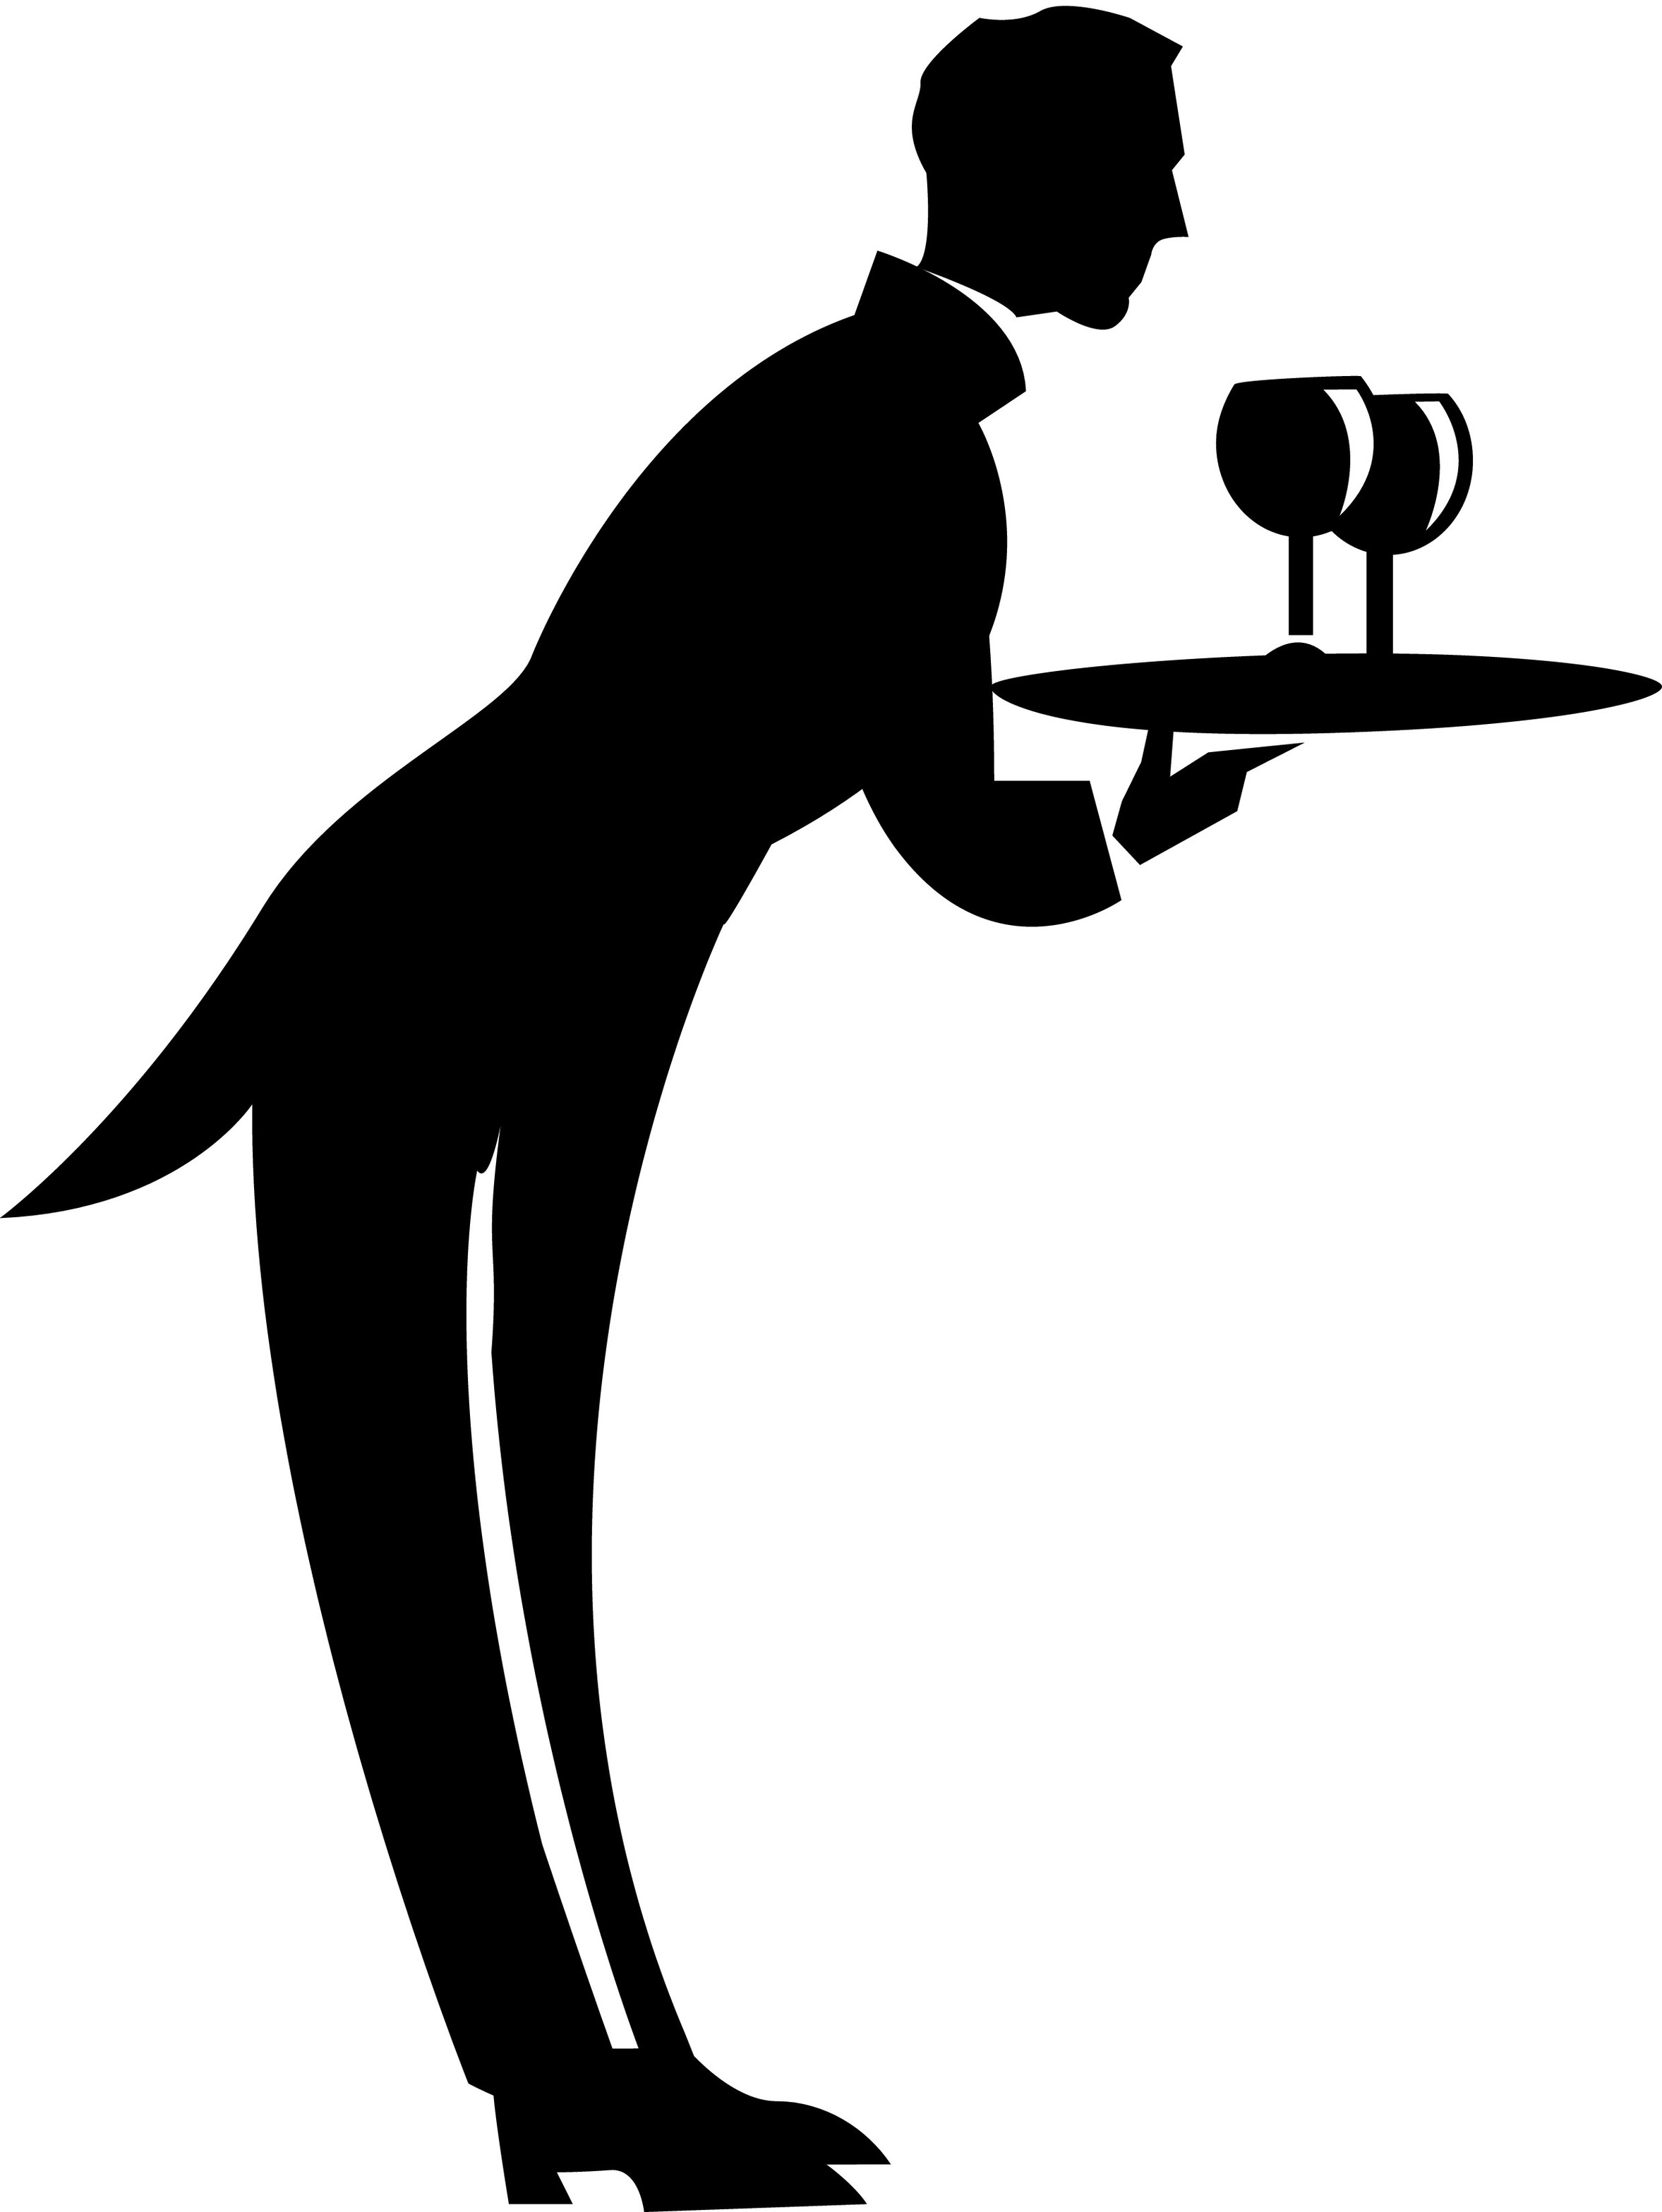 Waiter Clipart Png All The .-Waiter Clipart Png All The .-10